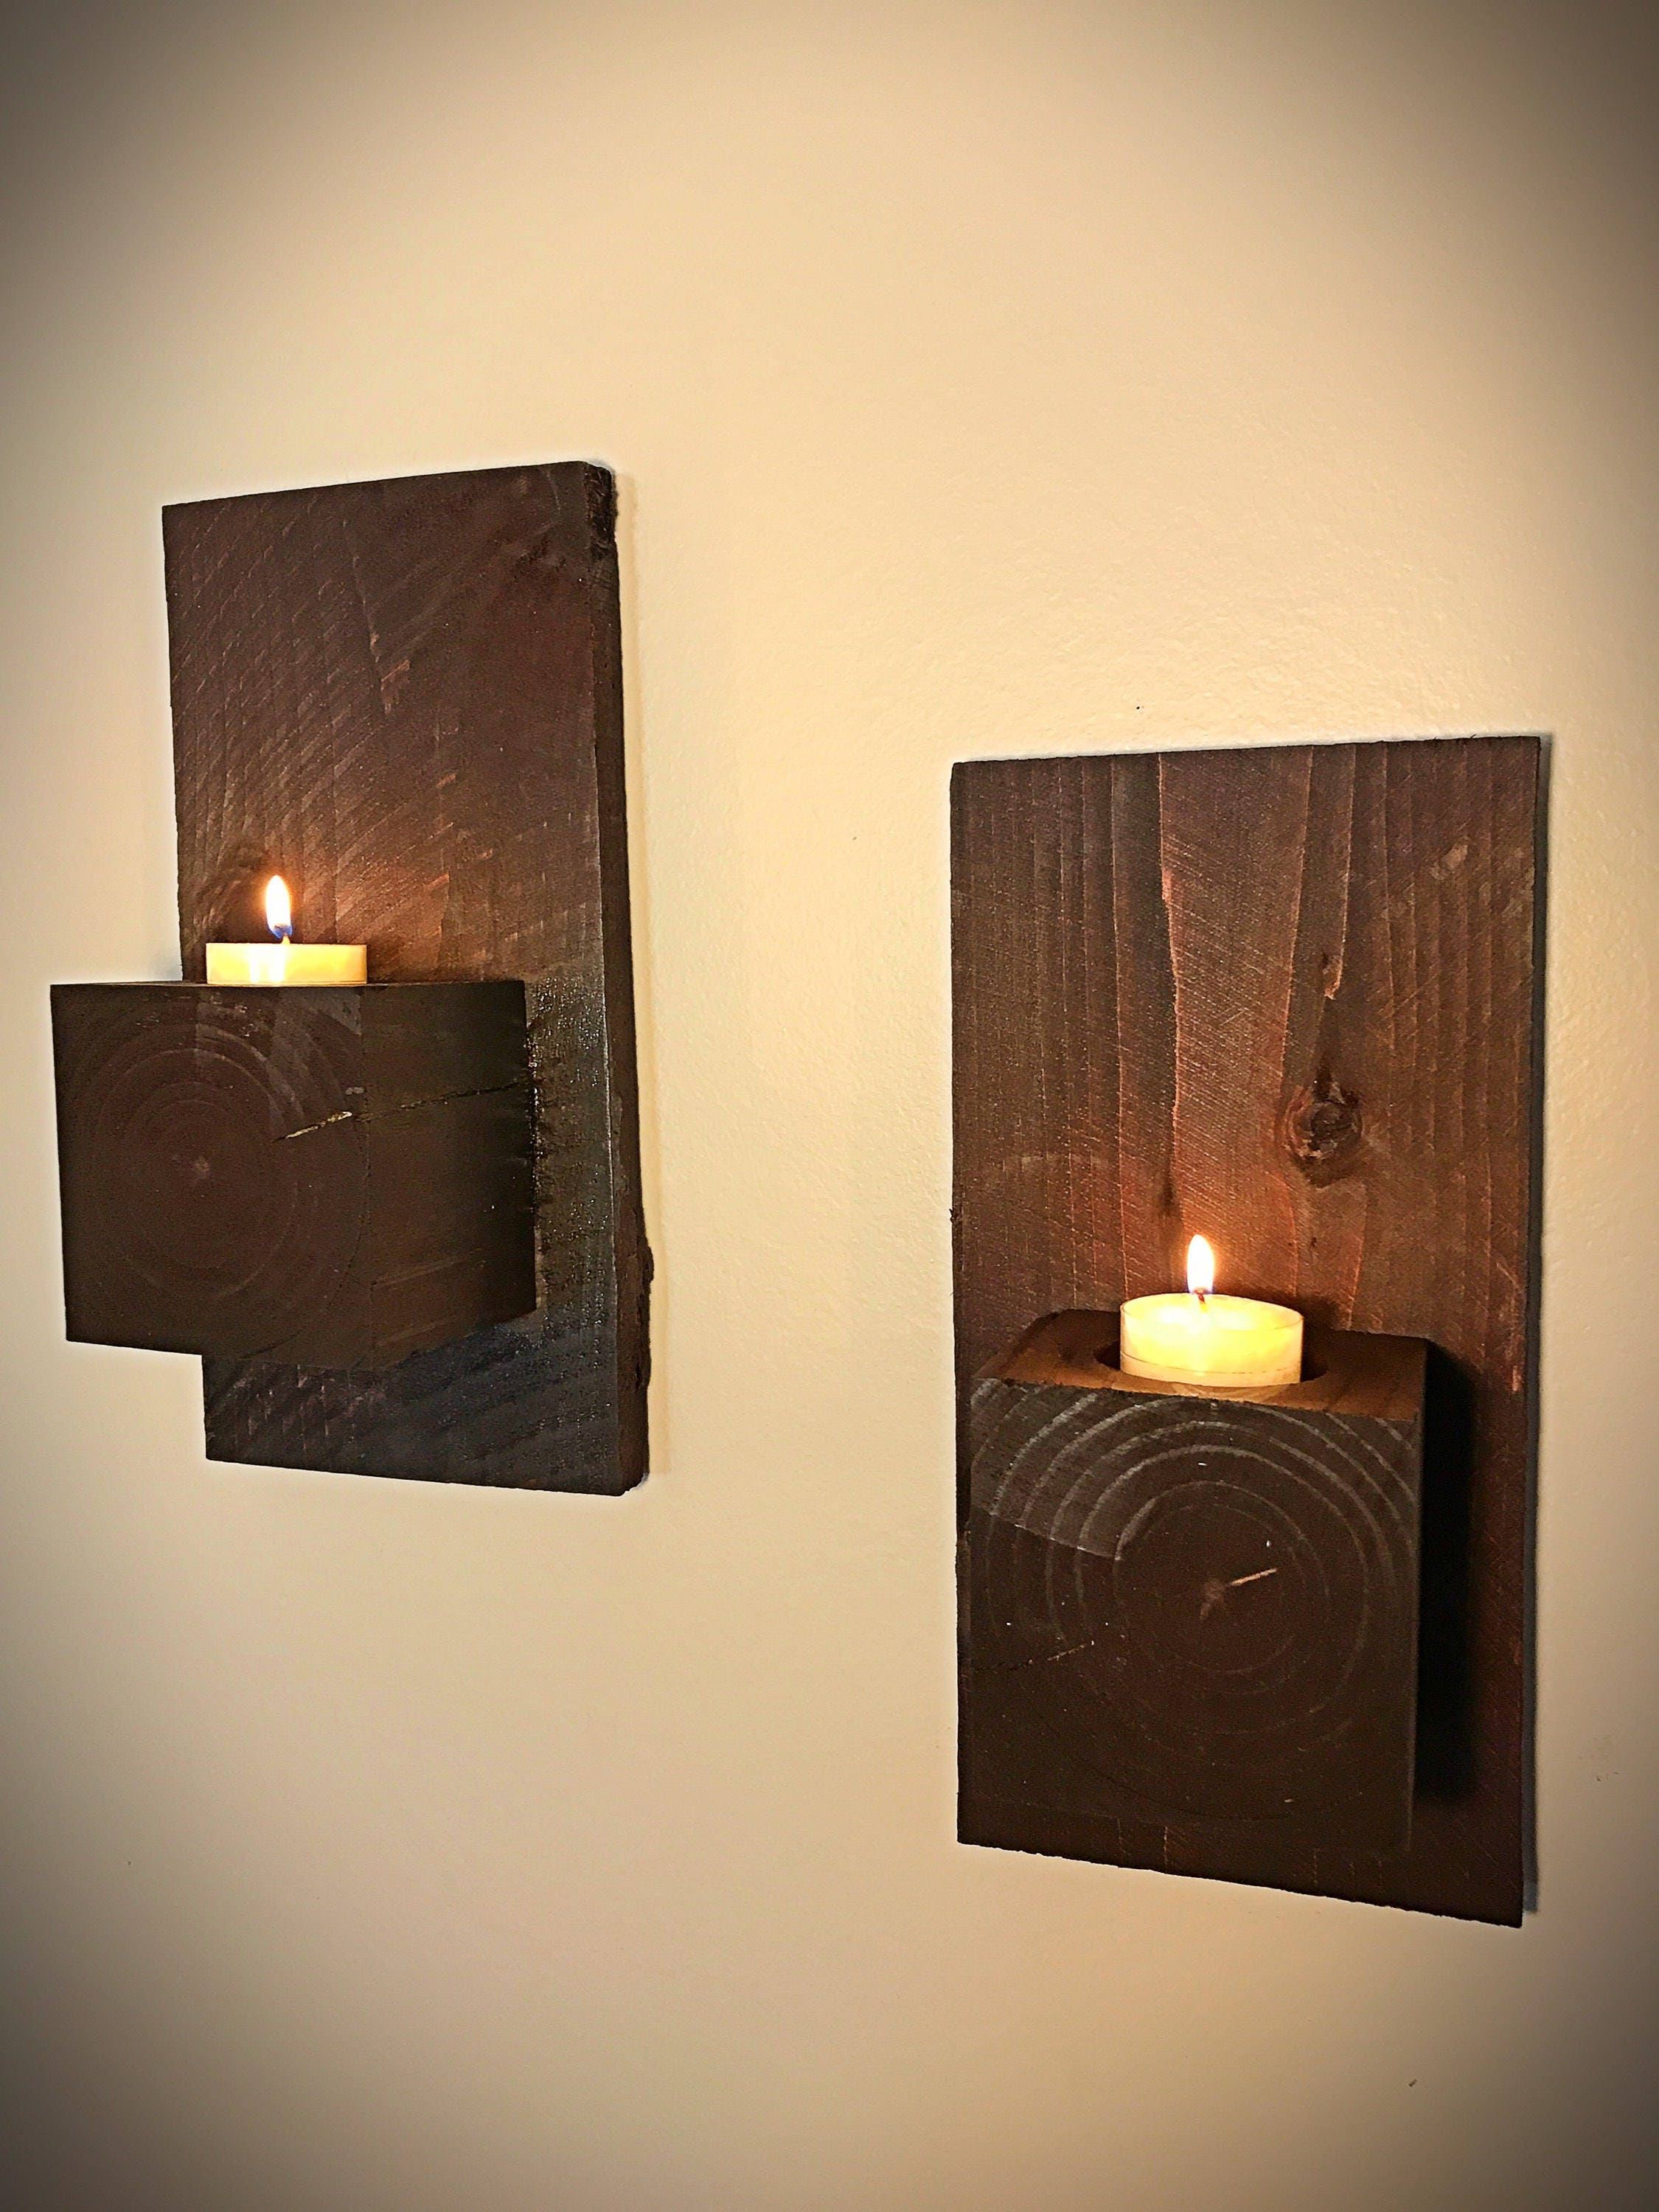 Set of 2 Wood Block Wall Sconce Rustic Home Decor Home &